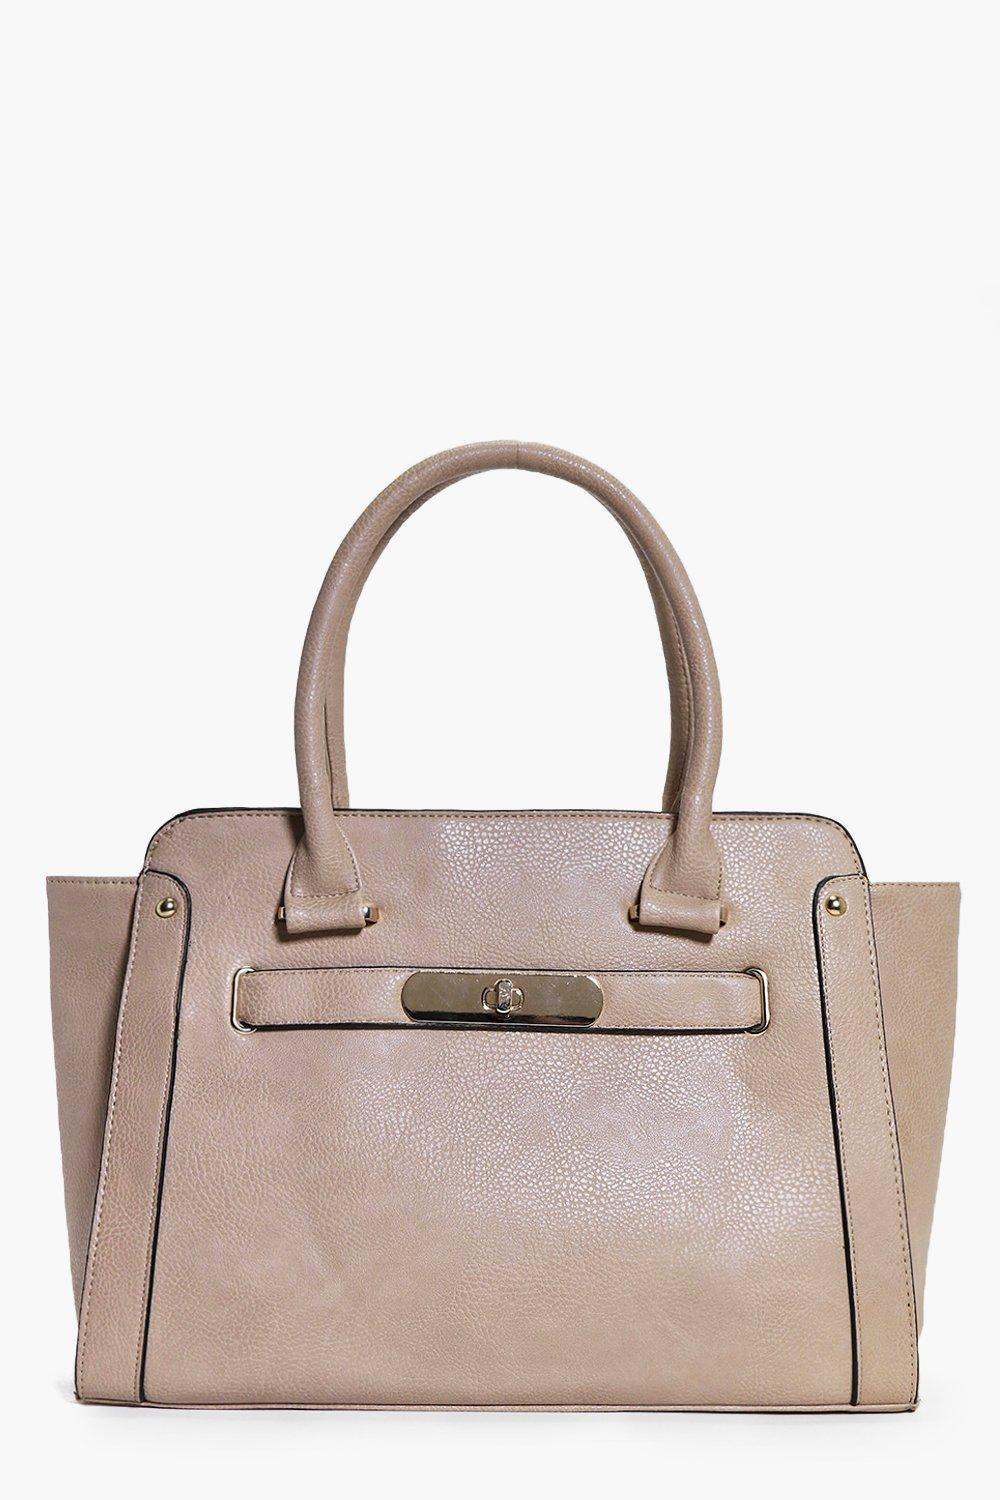 Oversize Turn Lock Clasp Day Bag camel